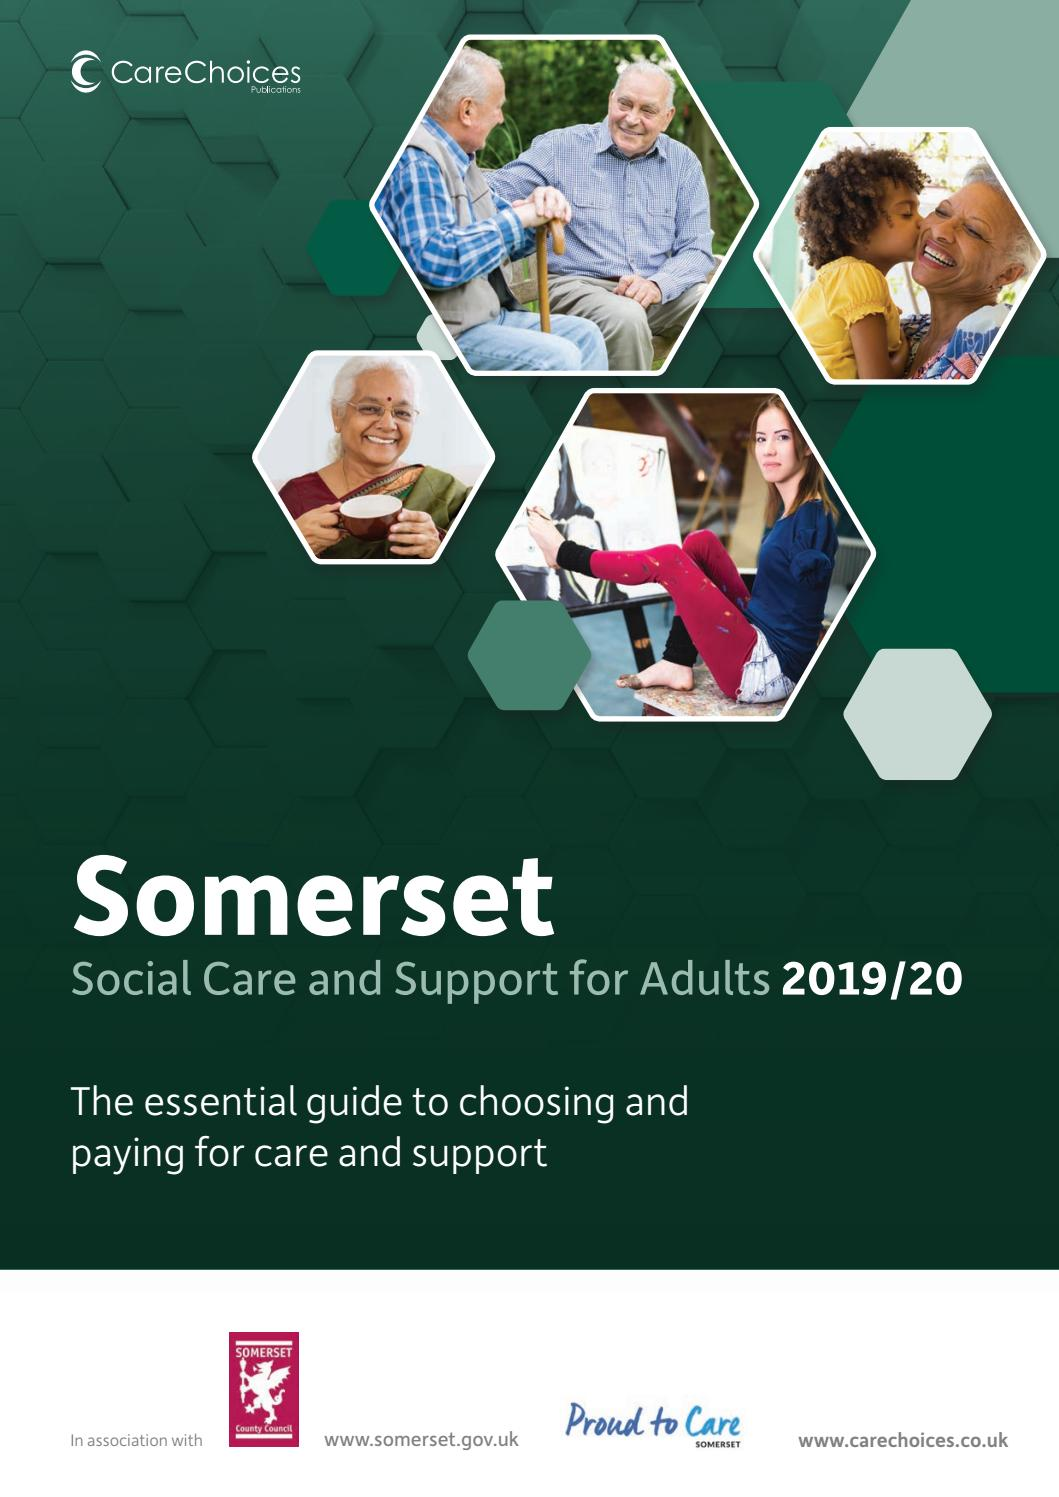 Somerset Social Care and Support for Adults 2019/20 by Care